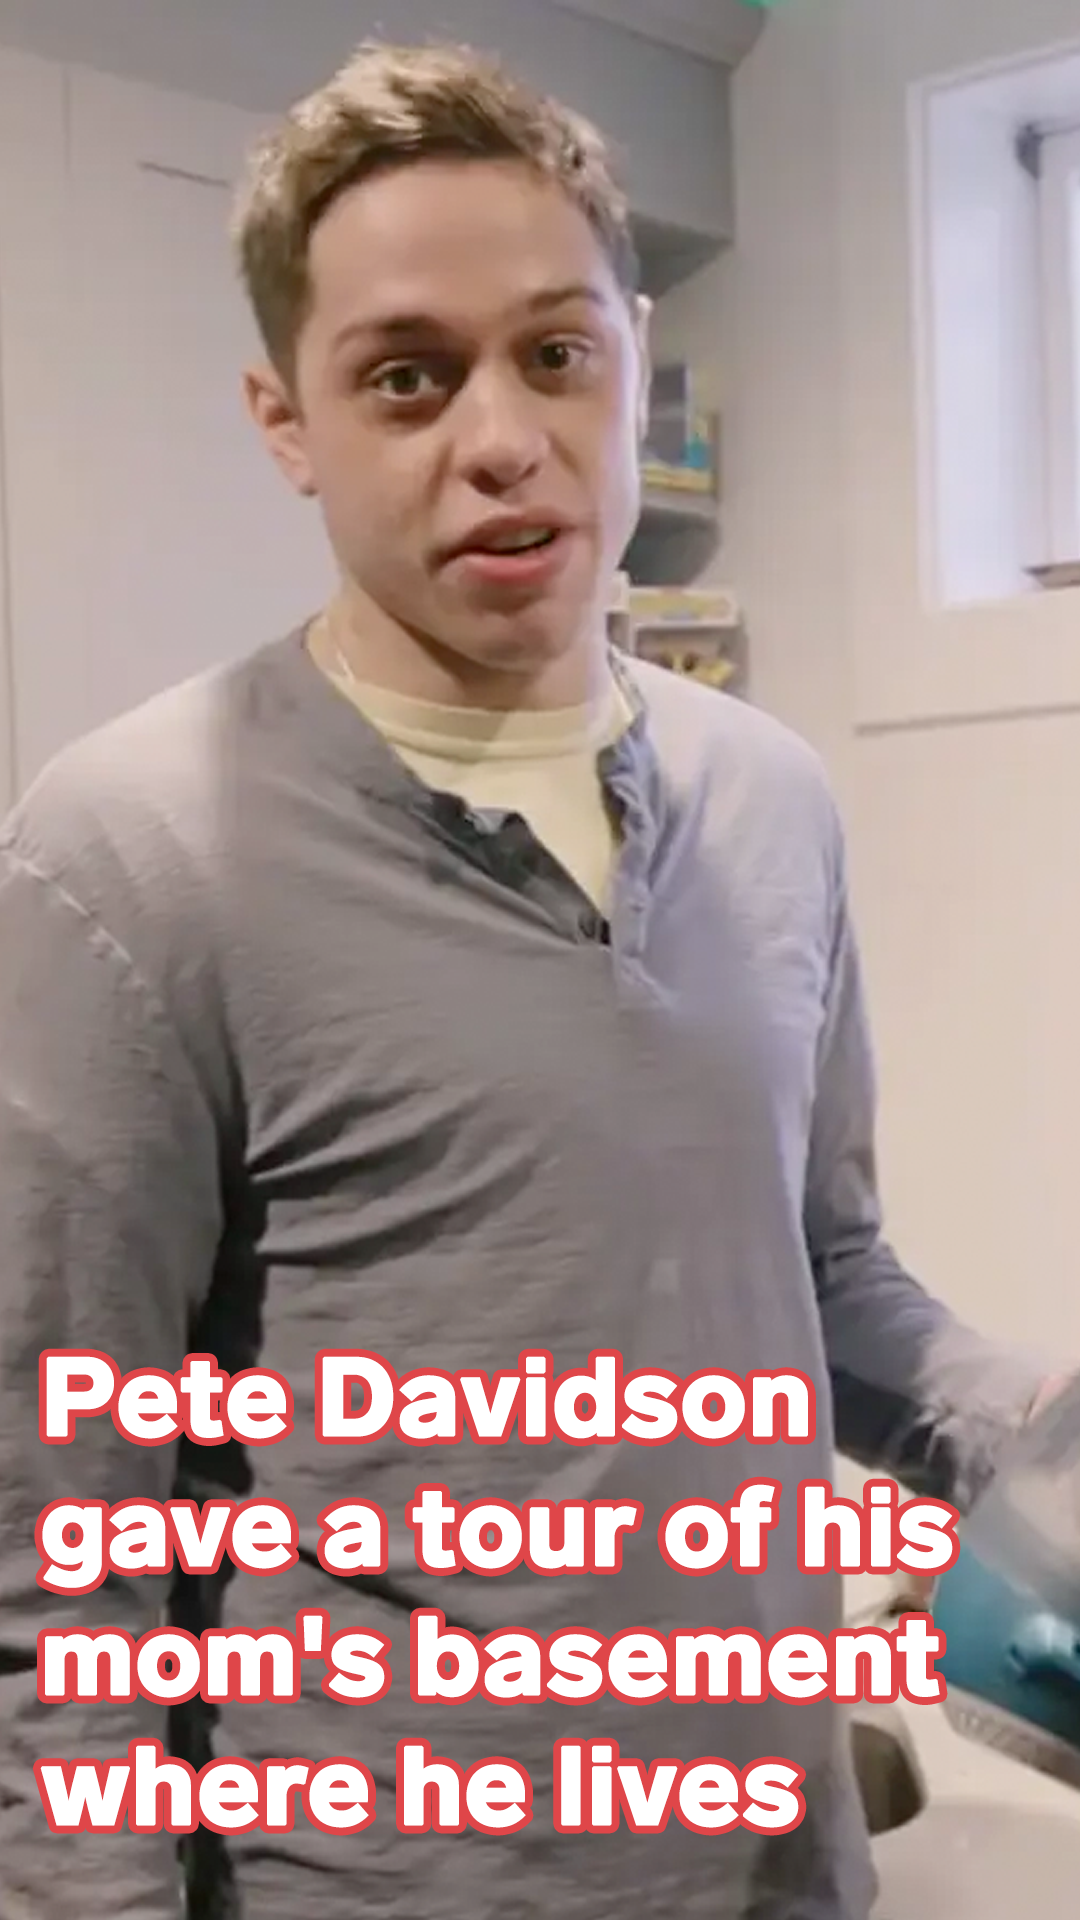 Pete Davidson gave a tour of his mom's basement where he lives, featuring a 'porno bathroom' and an 'Uncut Gems' basketball